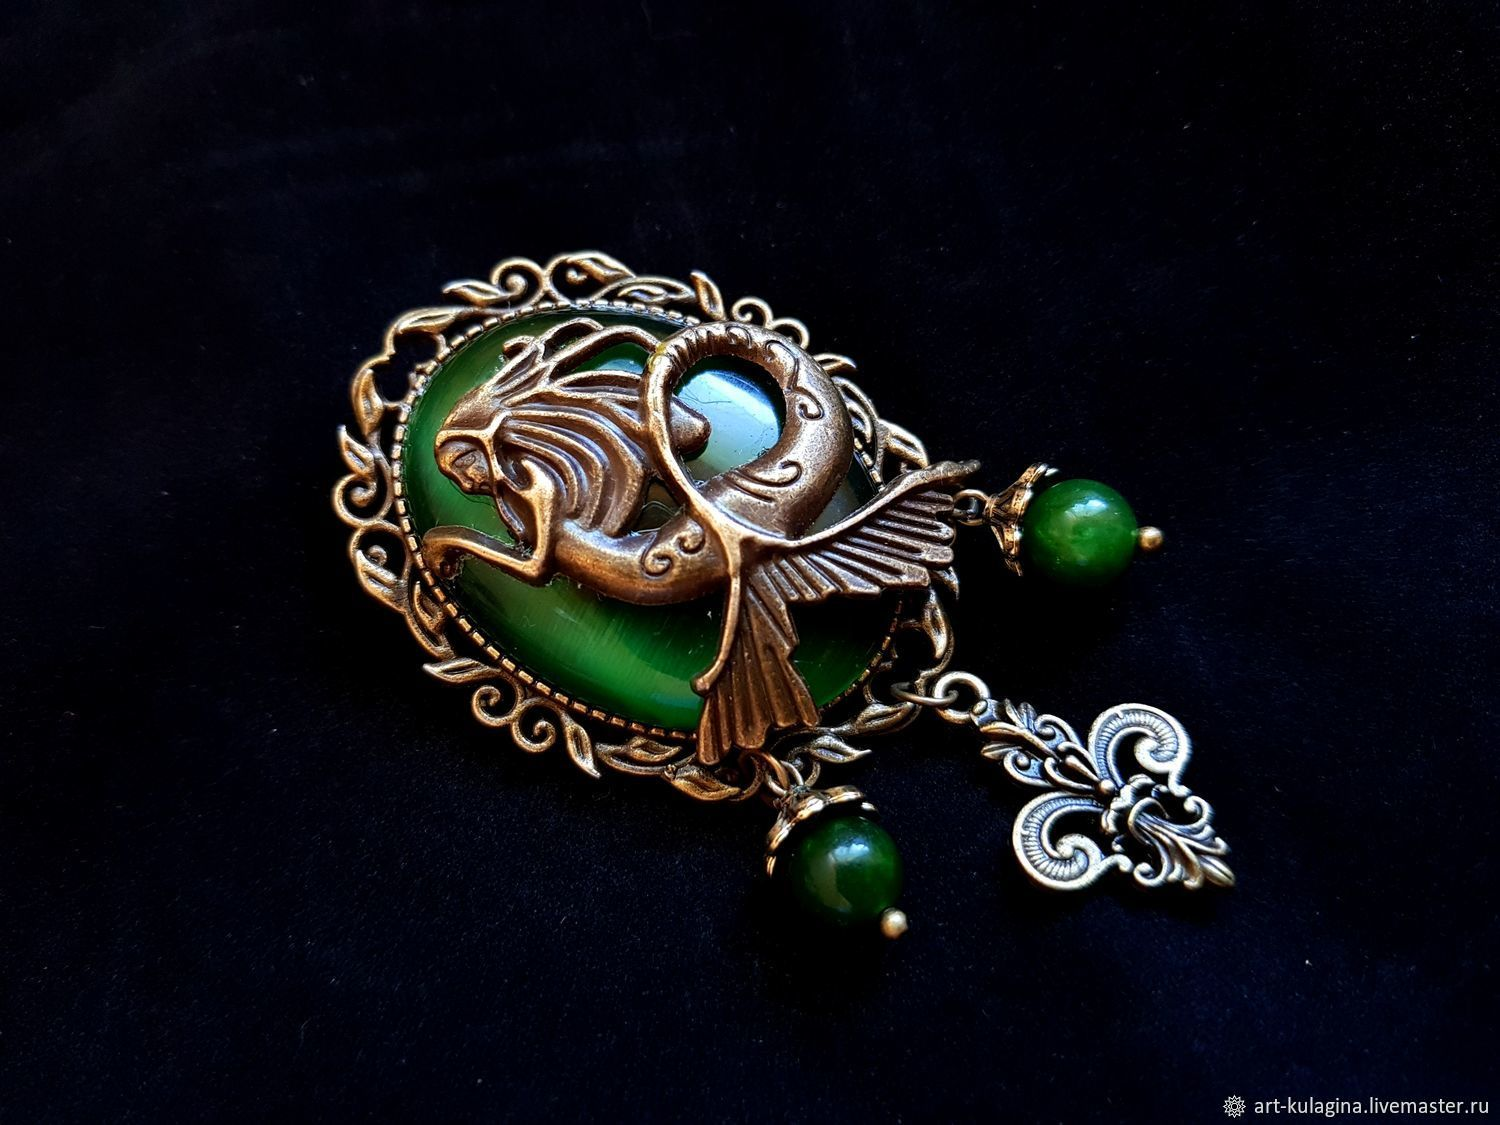 Brooch 'Ariel', Brooches, Moscow,  Фото №1